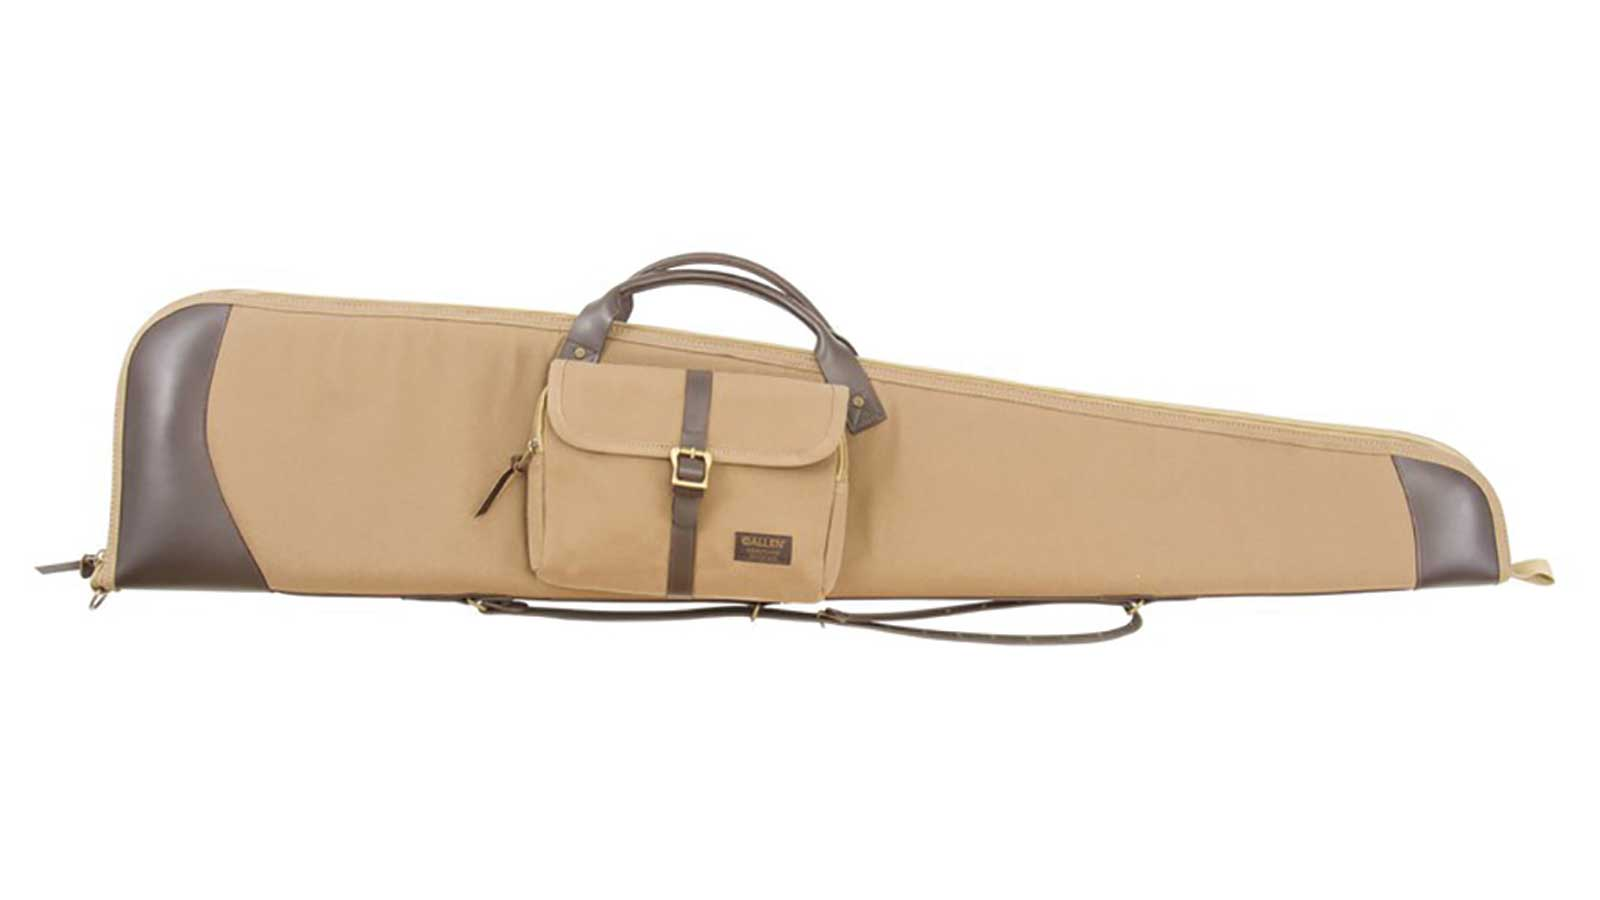 Allen 96948 Heritage Gun Case Canvas with Leather Accents 49 x 10.5 in.  x 4 in.  (Exterior) in.